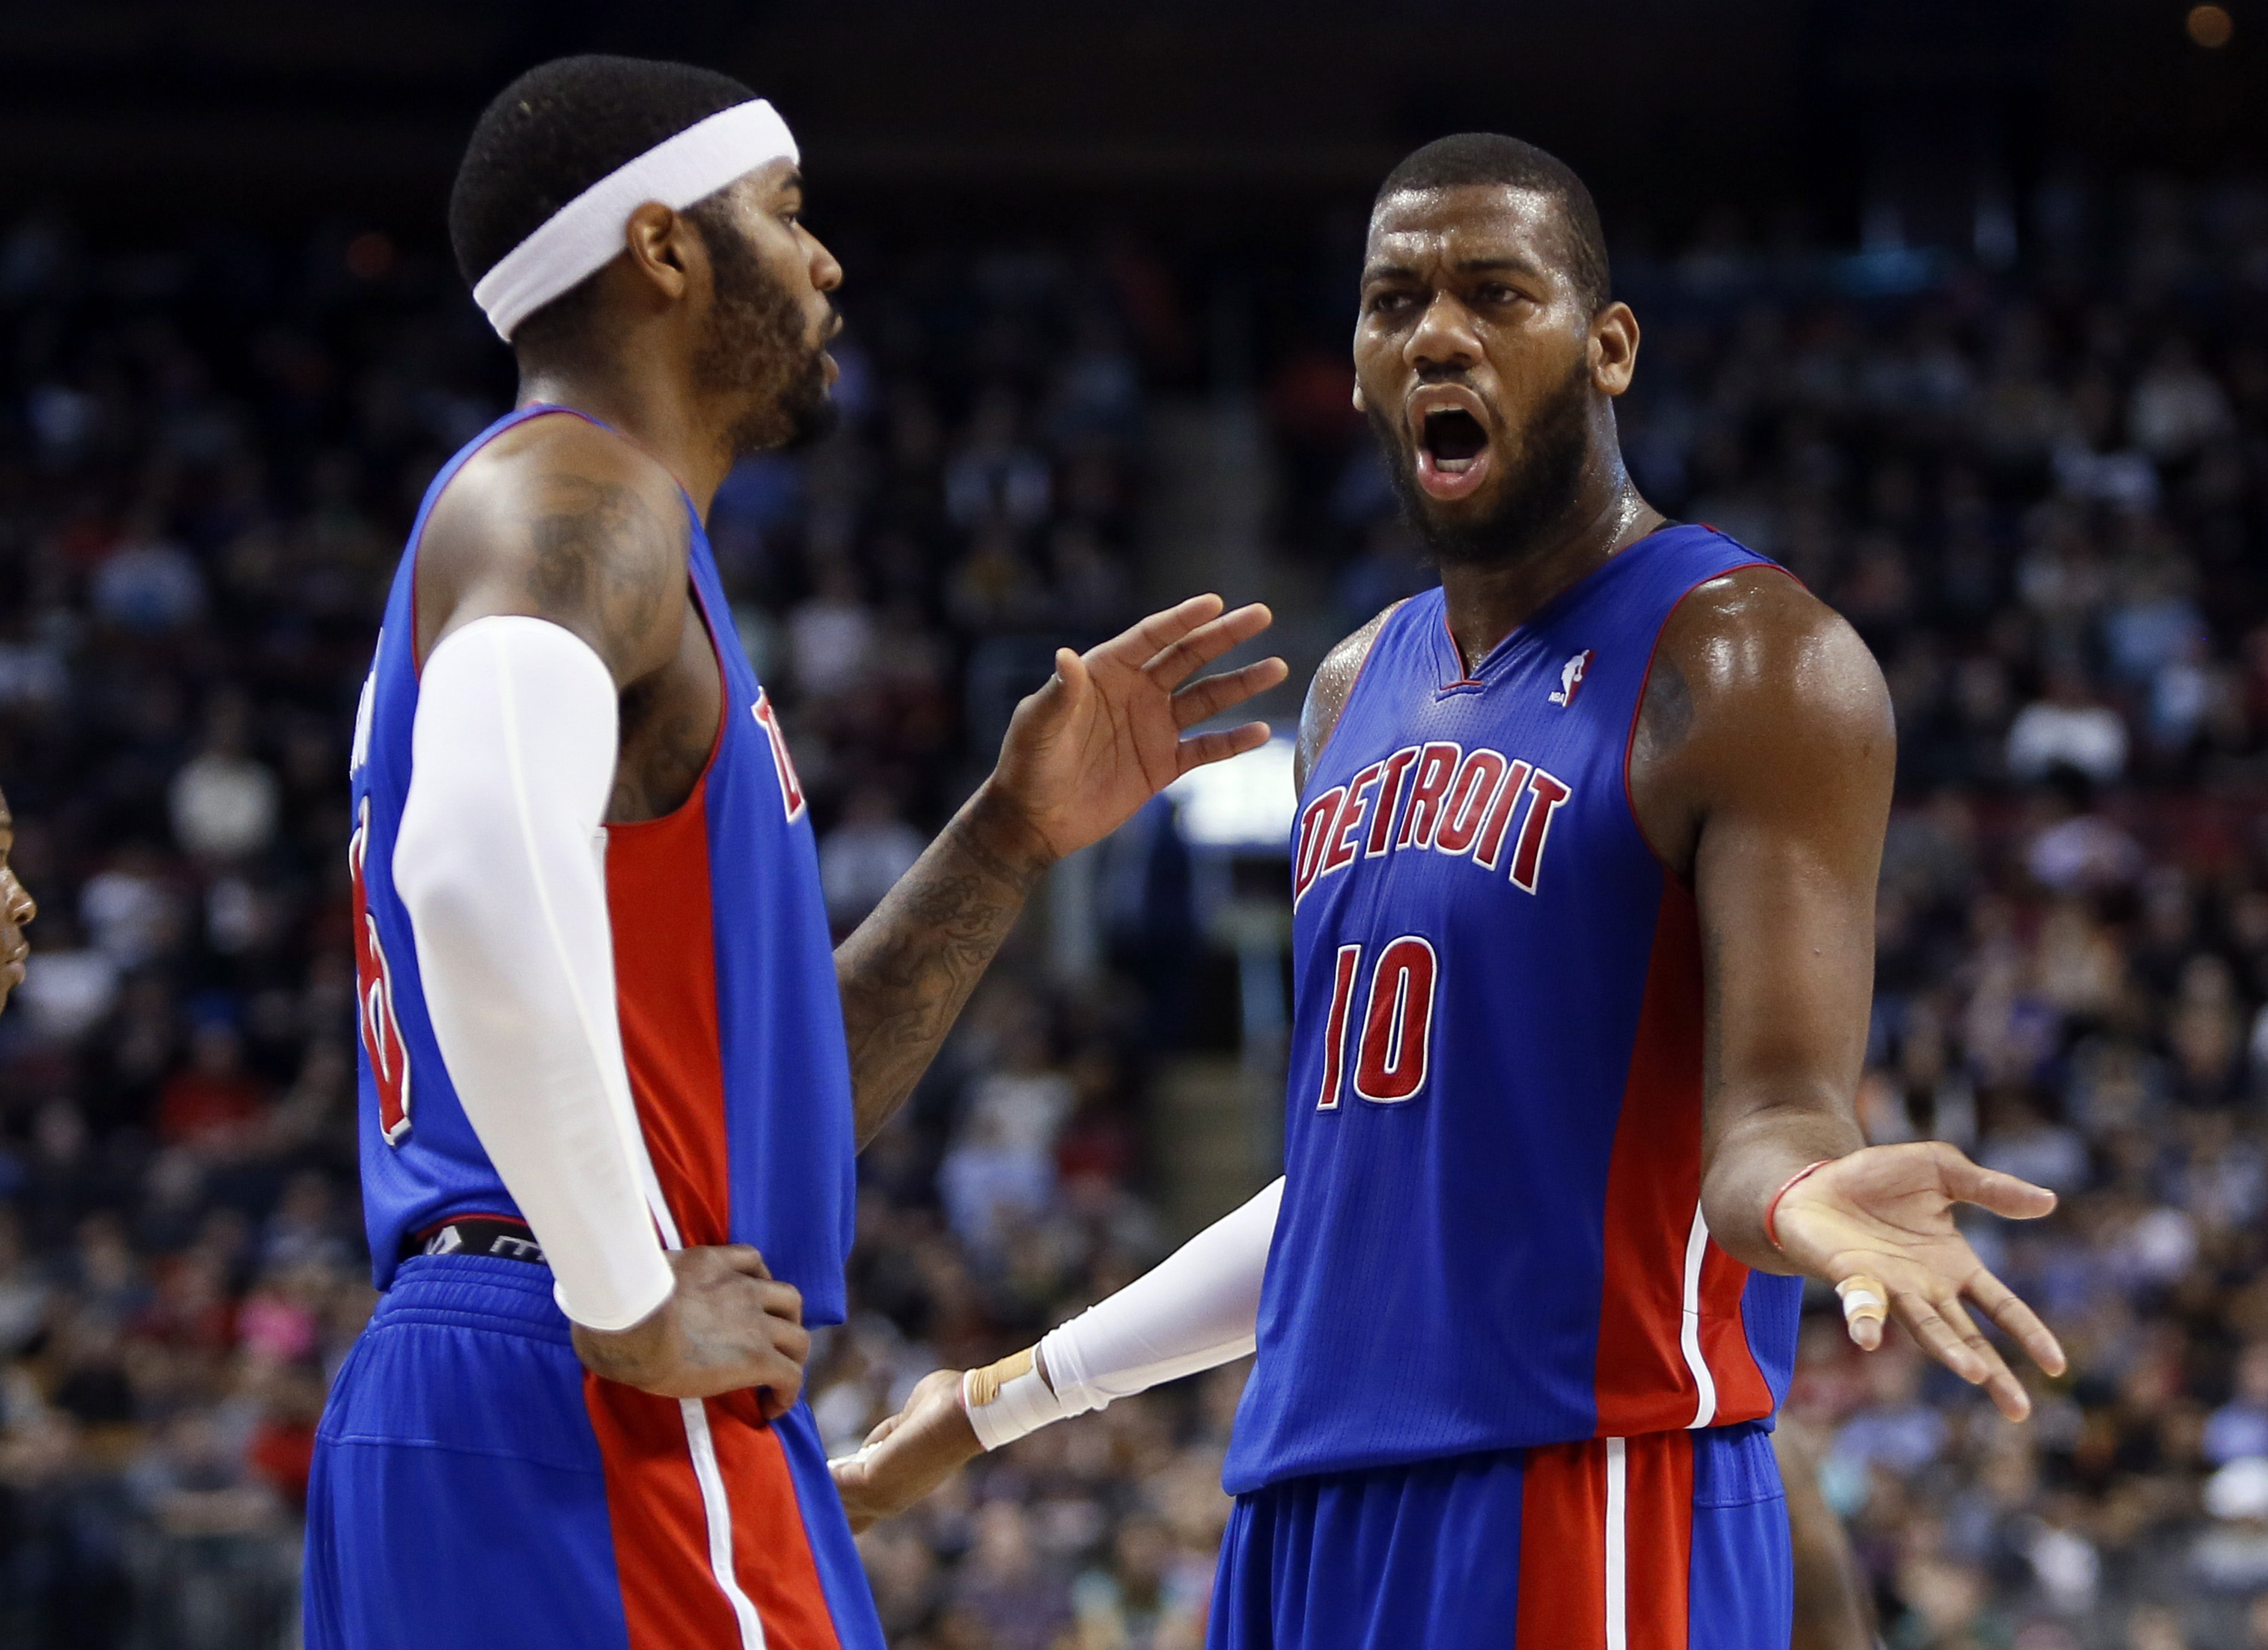 Greg Monroe willing to sign qualifying offer with Pistons, per report